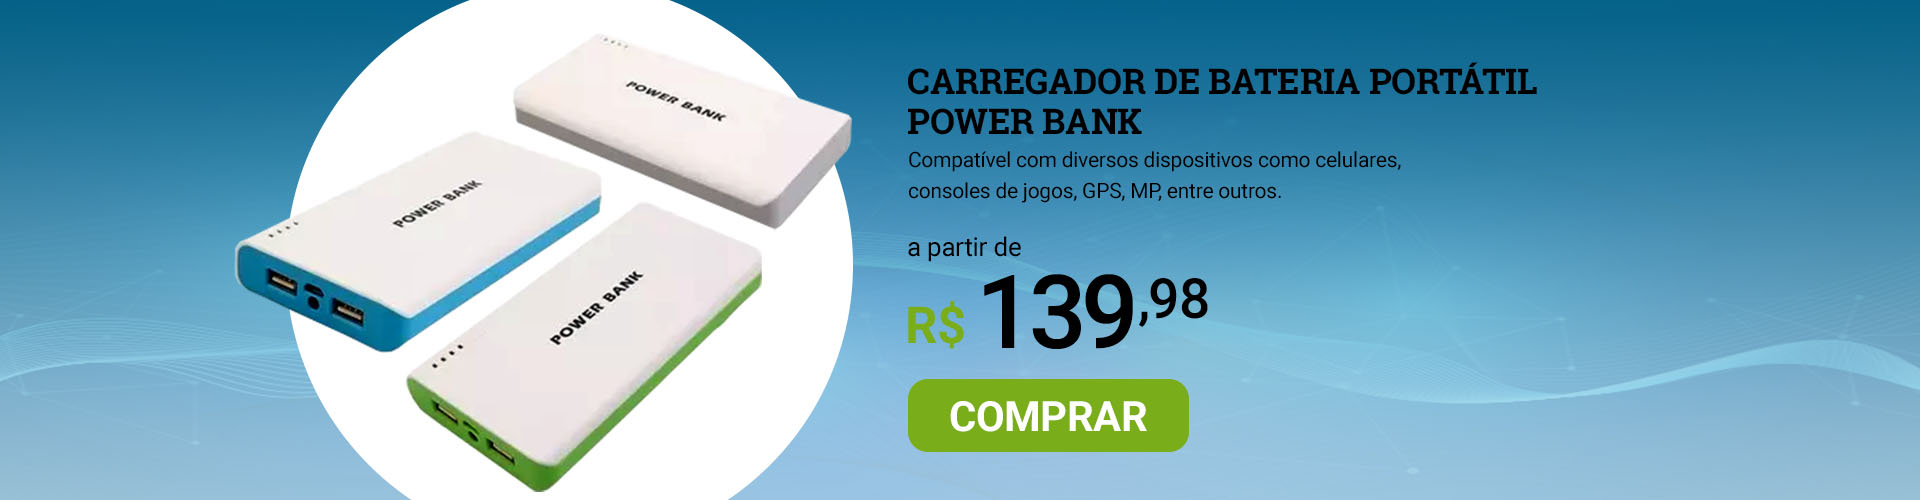 superoff - power bank